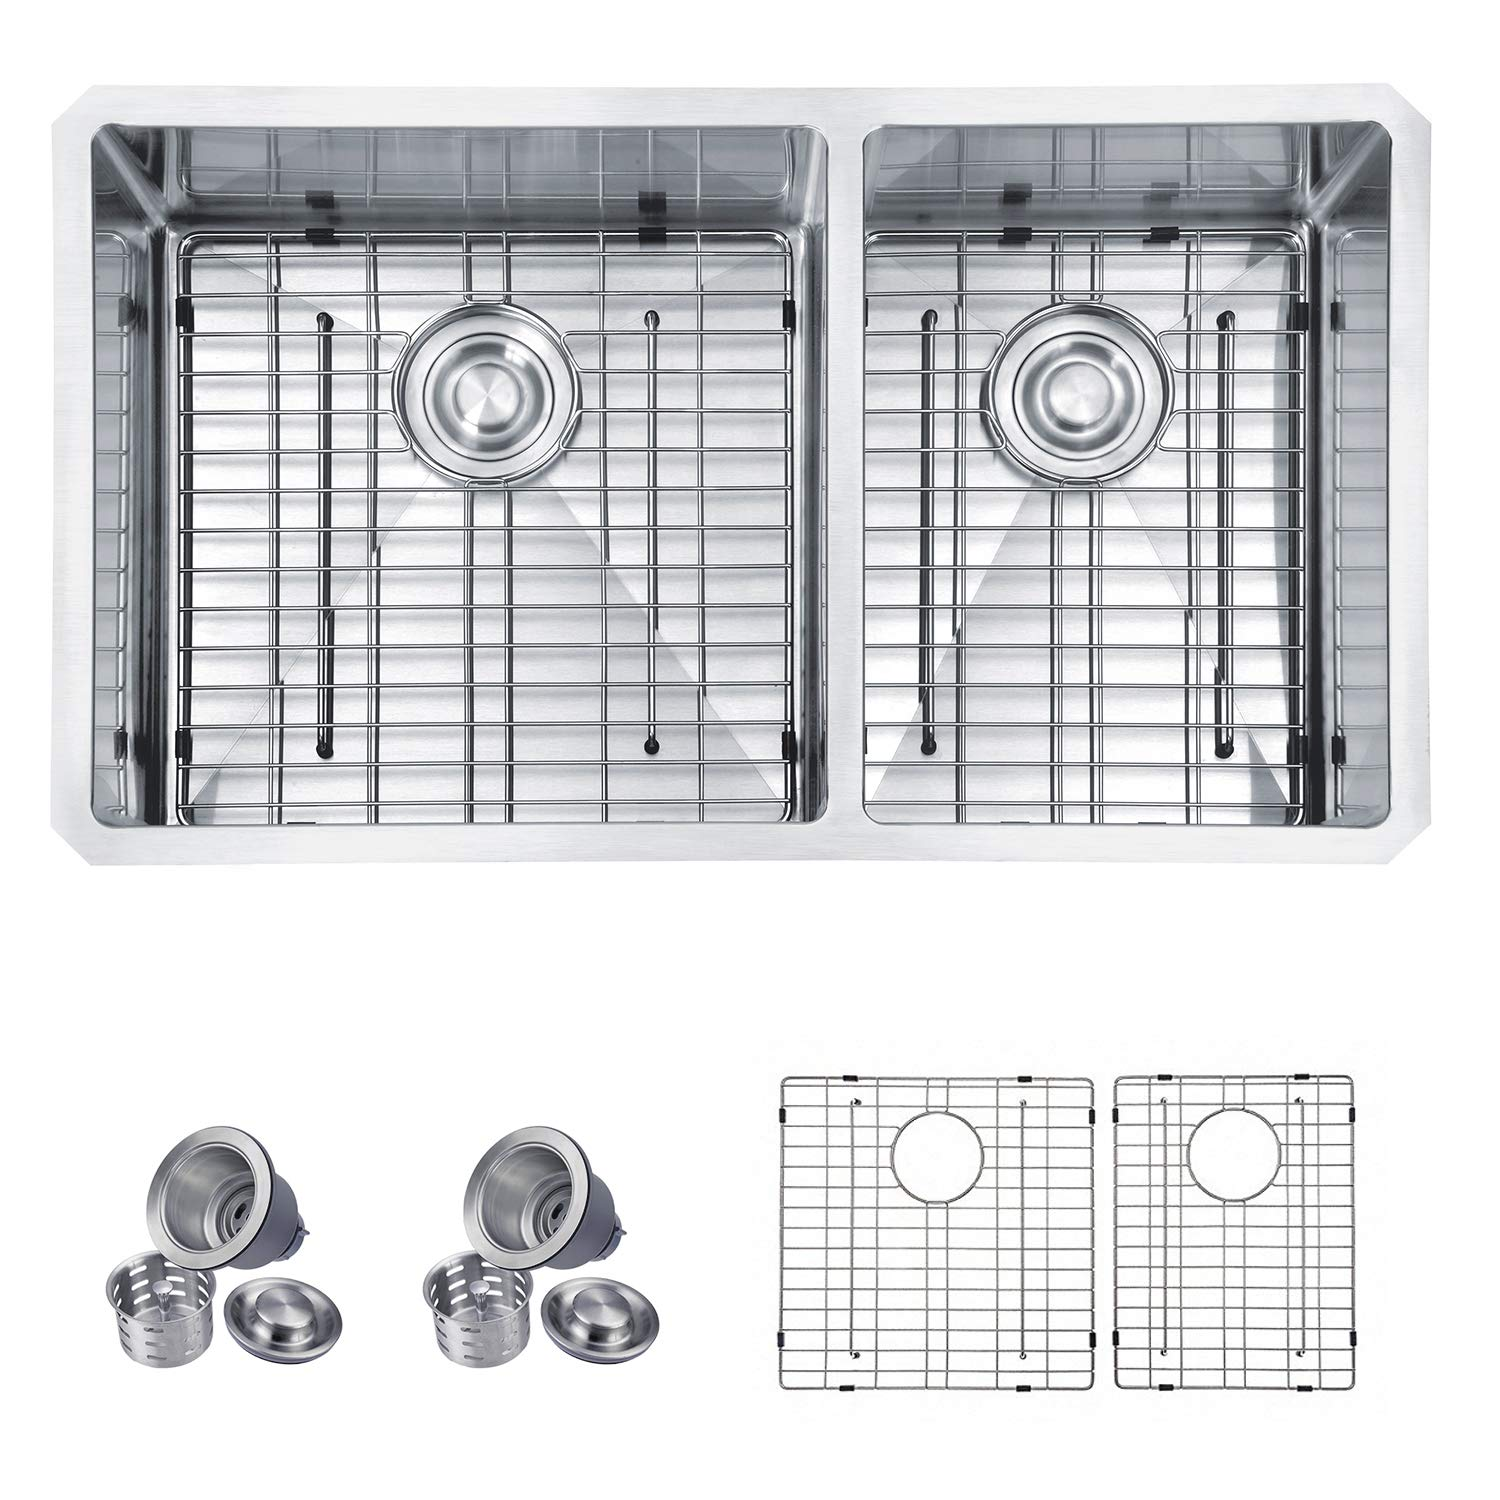 MOWA HUD33DO Pro Series Handmade 33'' 16 Gauge Stainless Steel Undermount 60/40 Double Kitchen Sink - Upgraded w/Perfect Drainage, Bonus Combo w/Soap Dispenser, Basket Strainers & Sink Grids